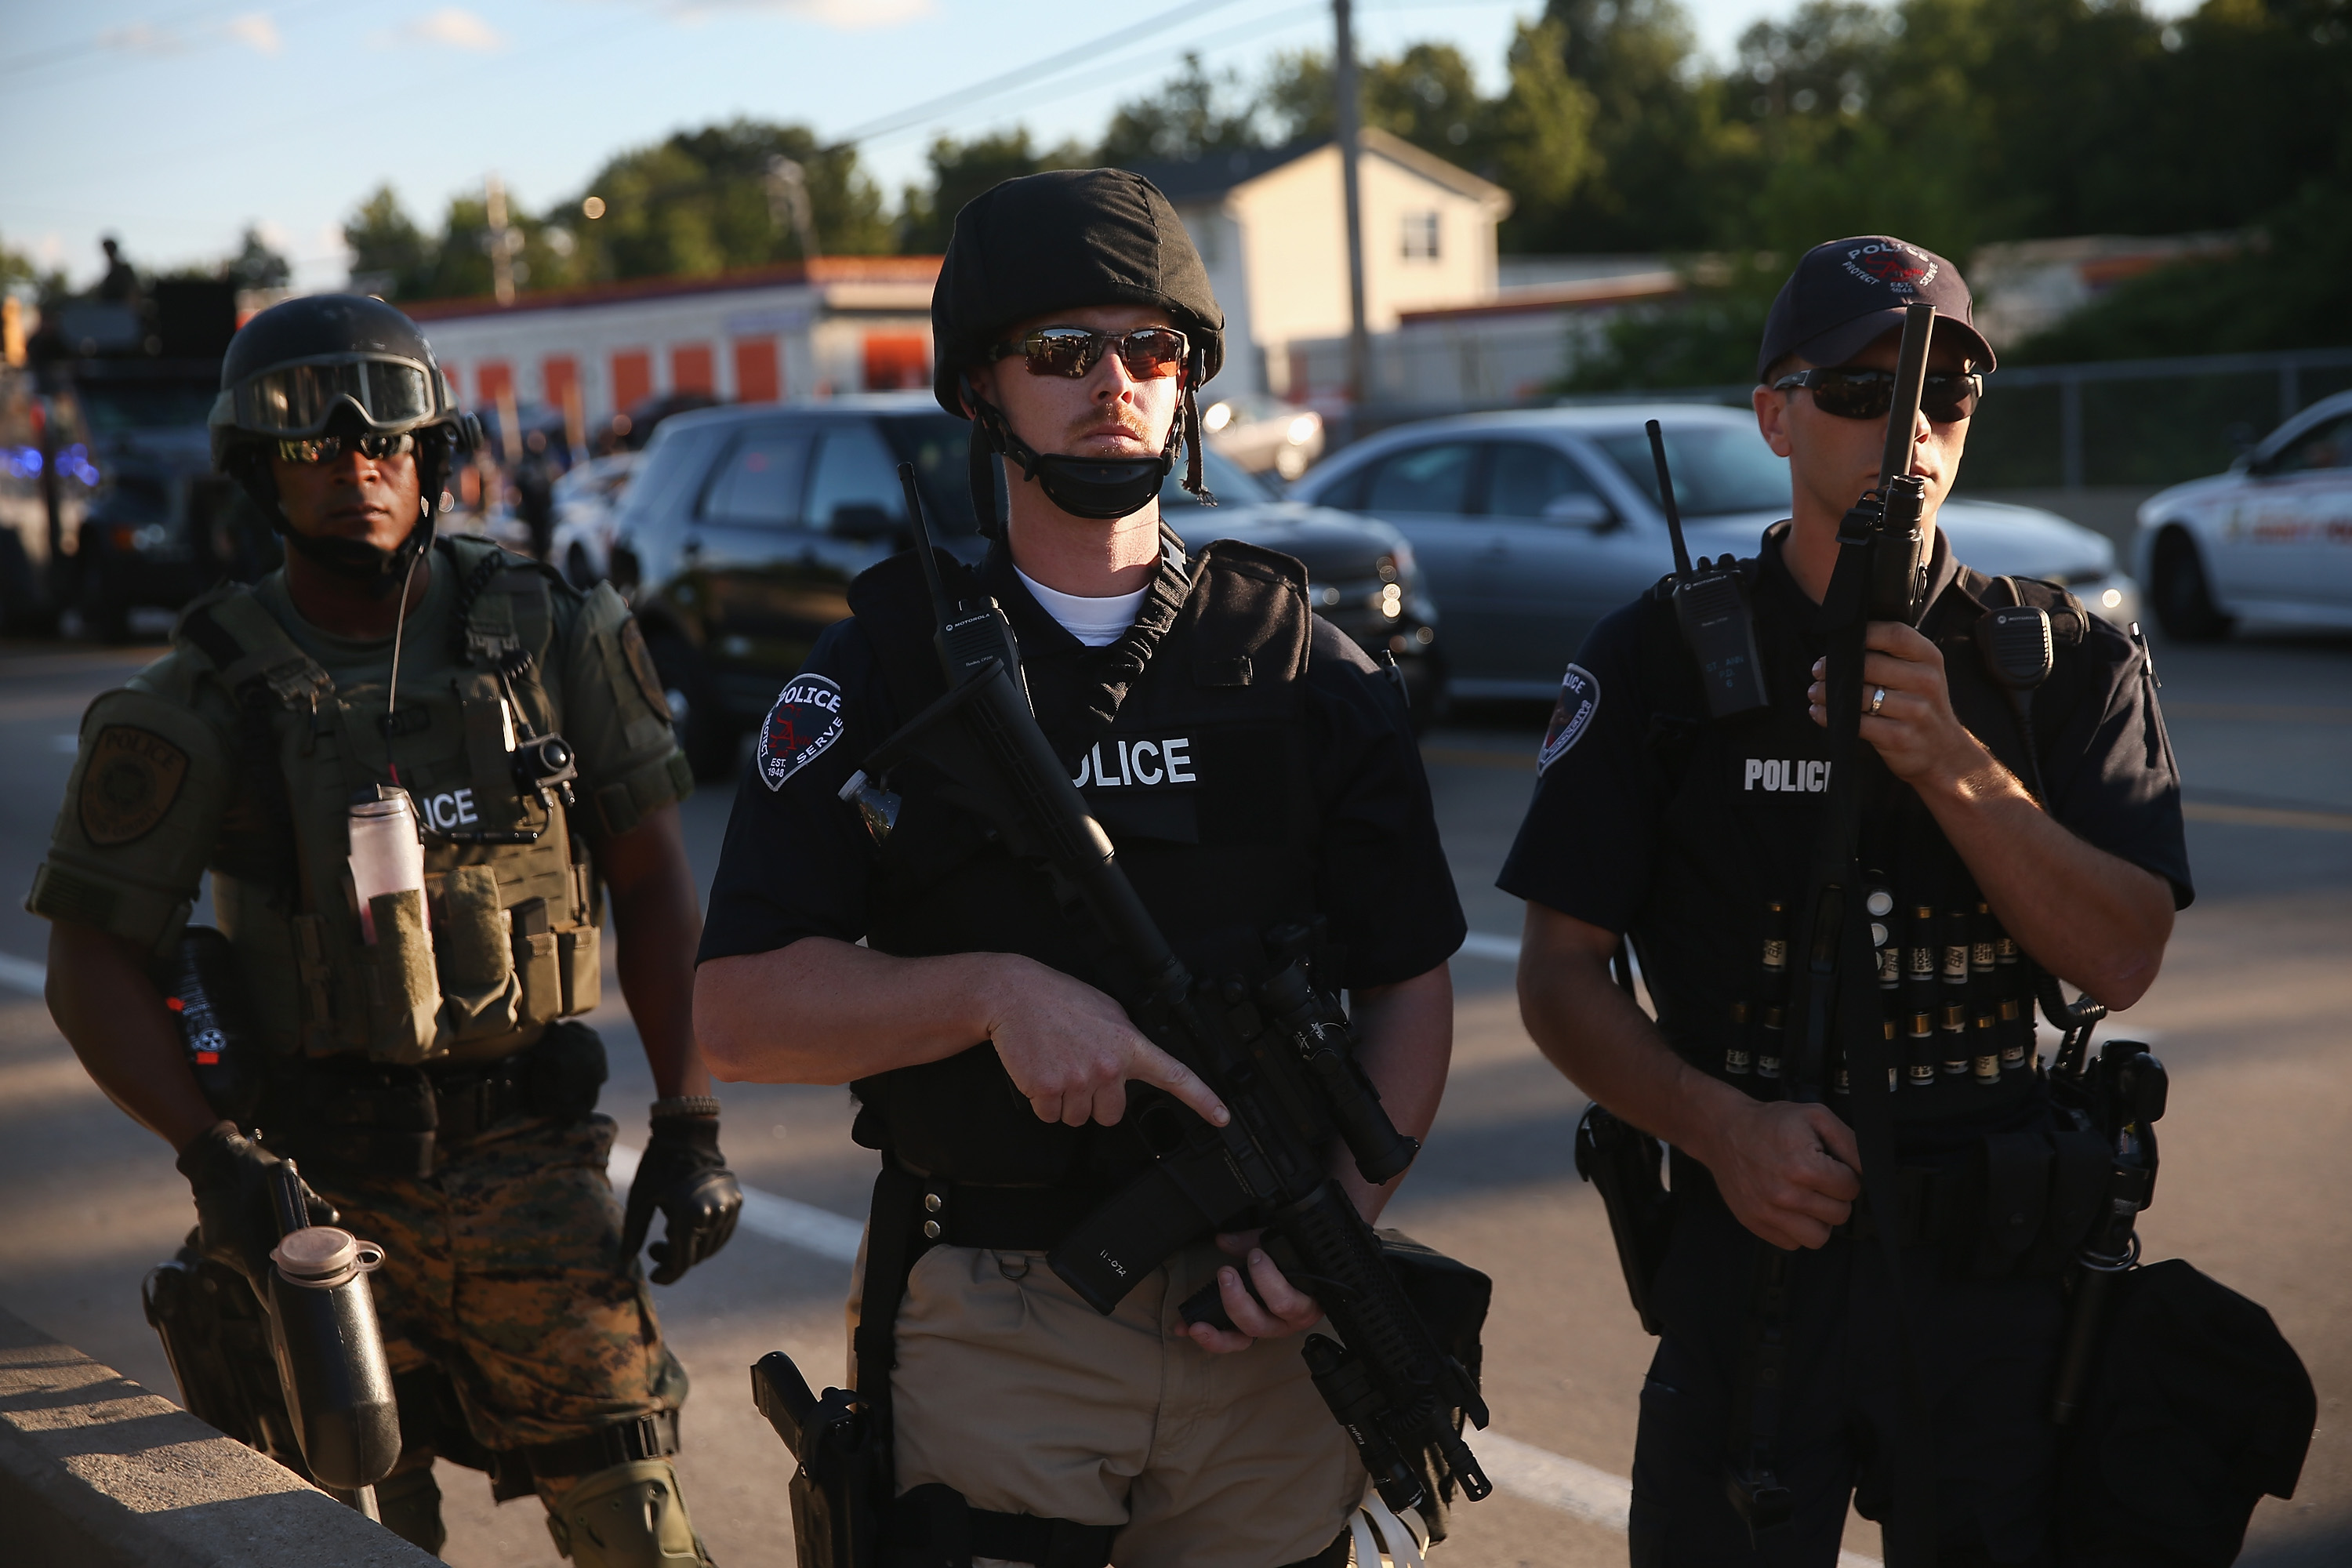 Why Americas police forces look like invading armies Vox